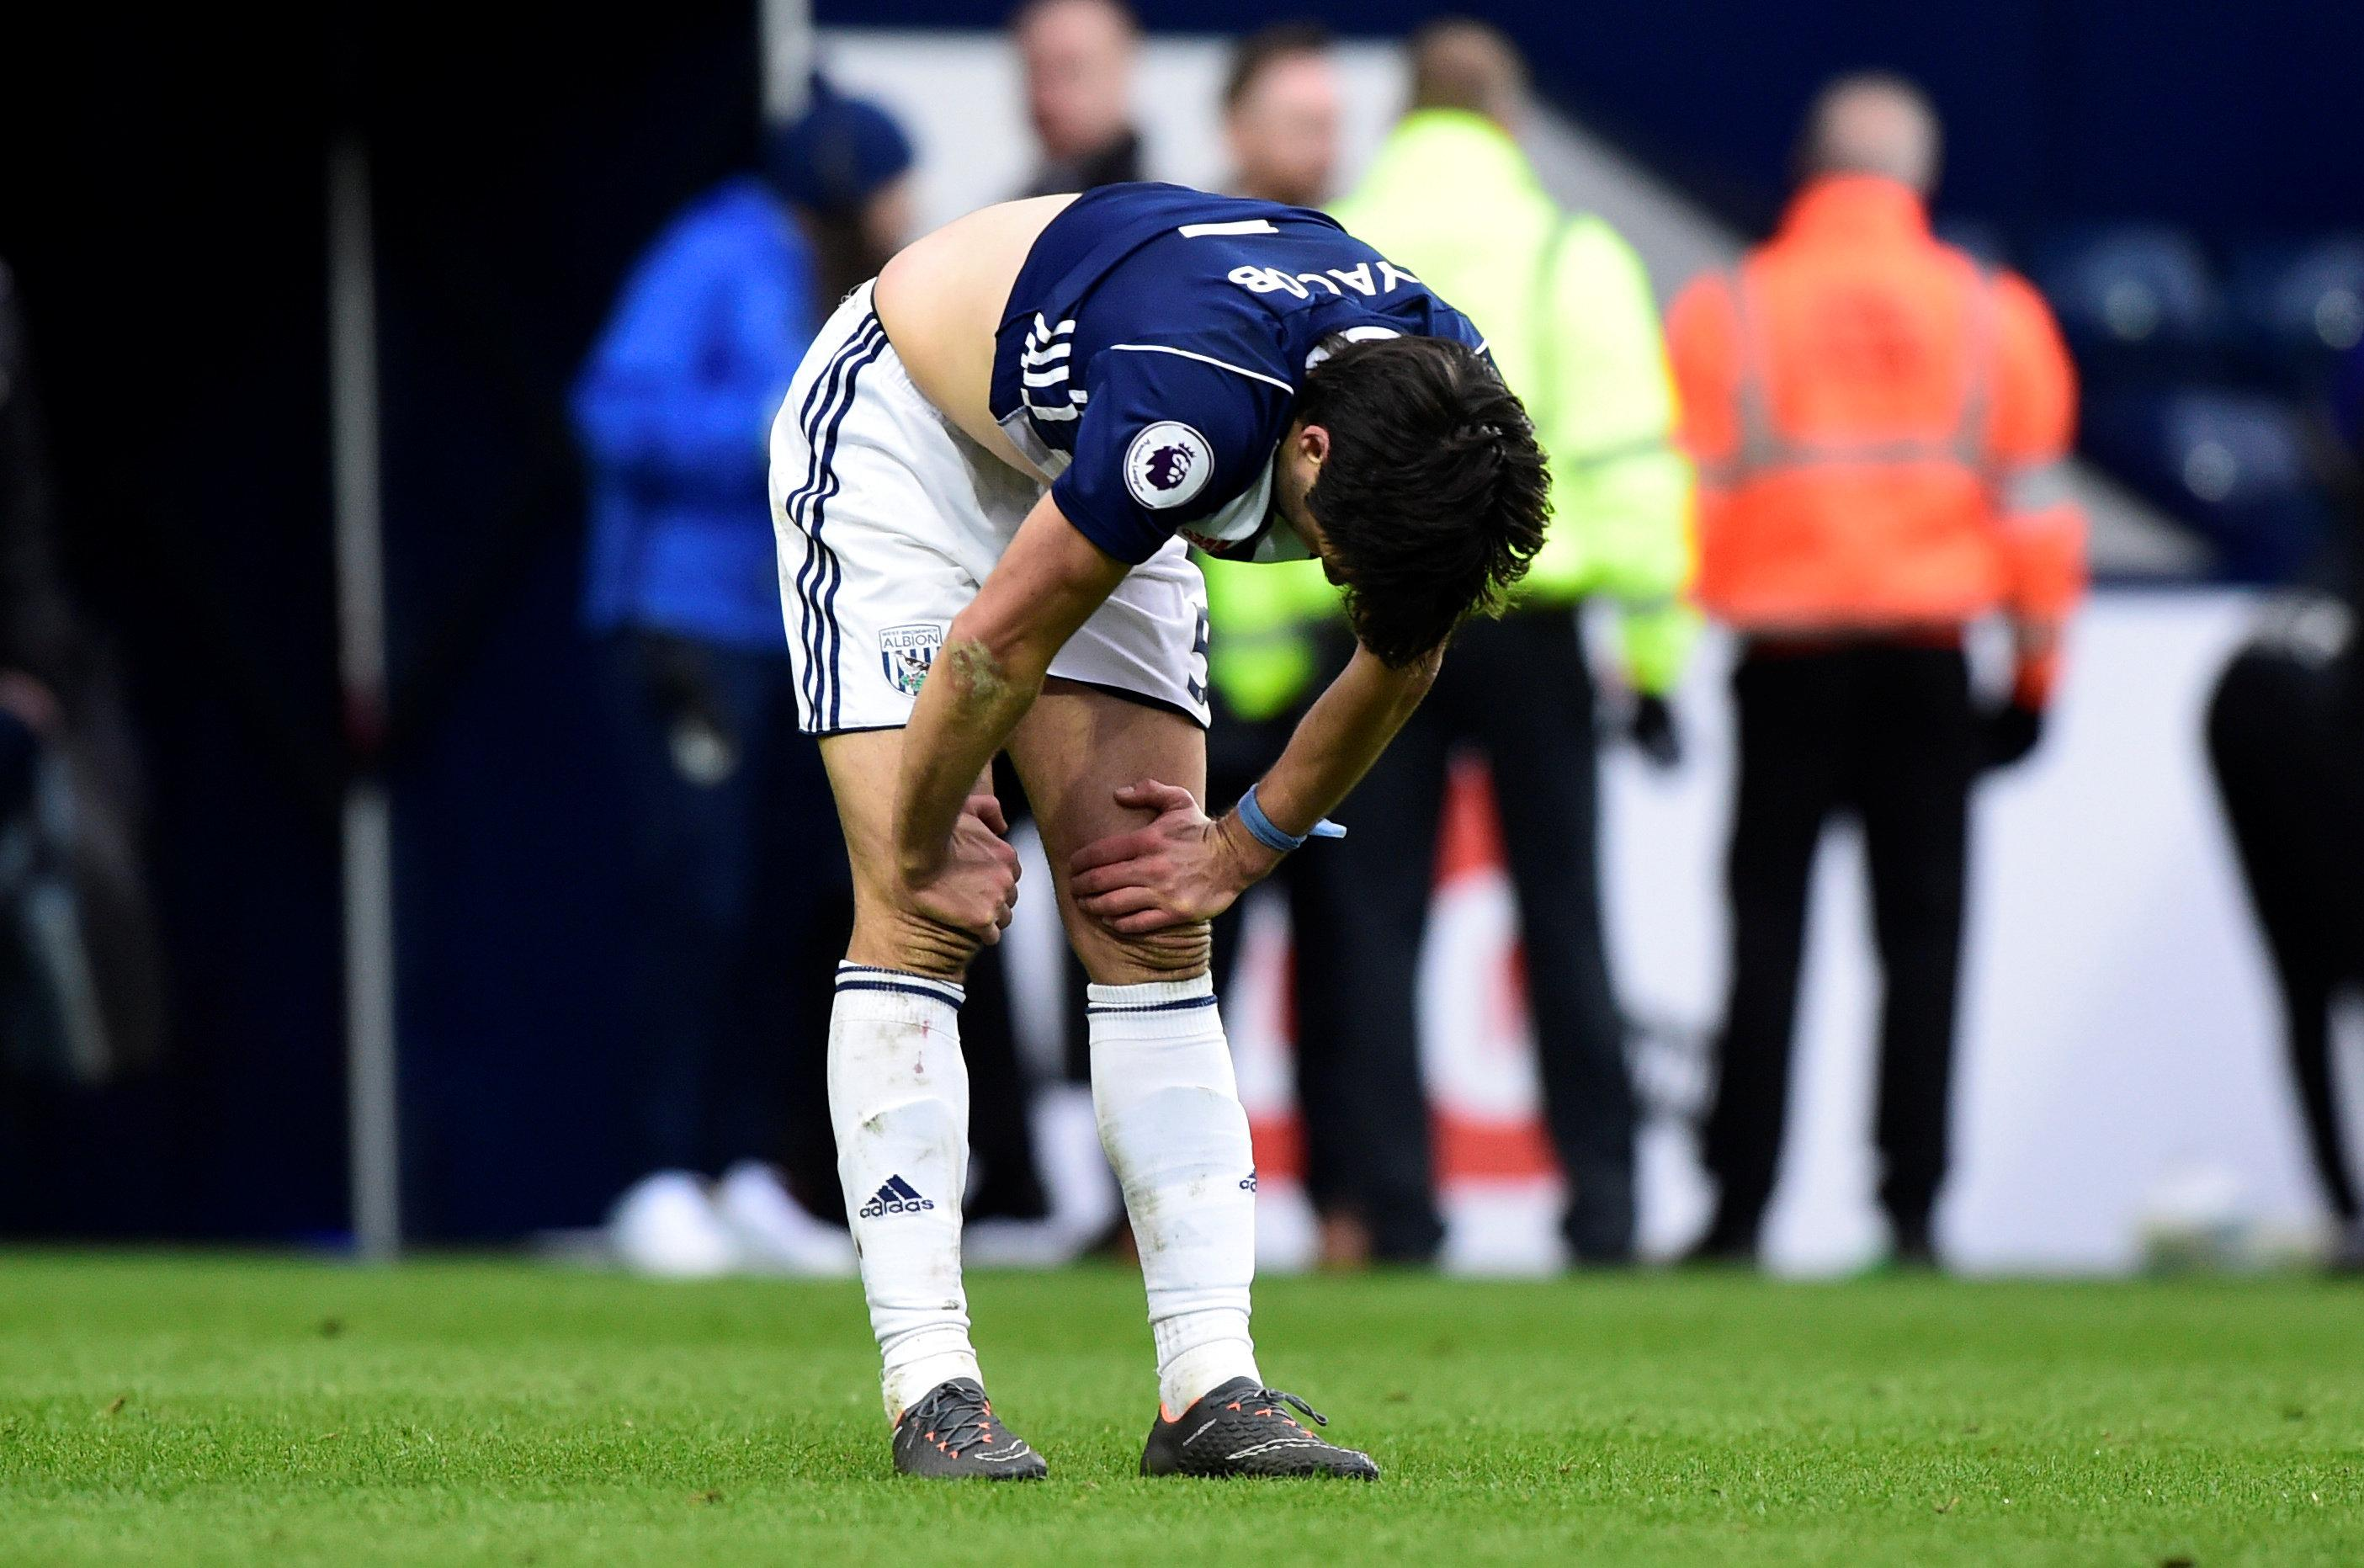 West Bromwich Albion's Claudio Yacob looks dejected after the match.